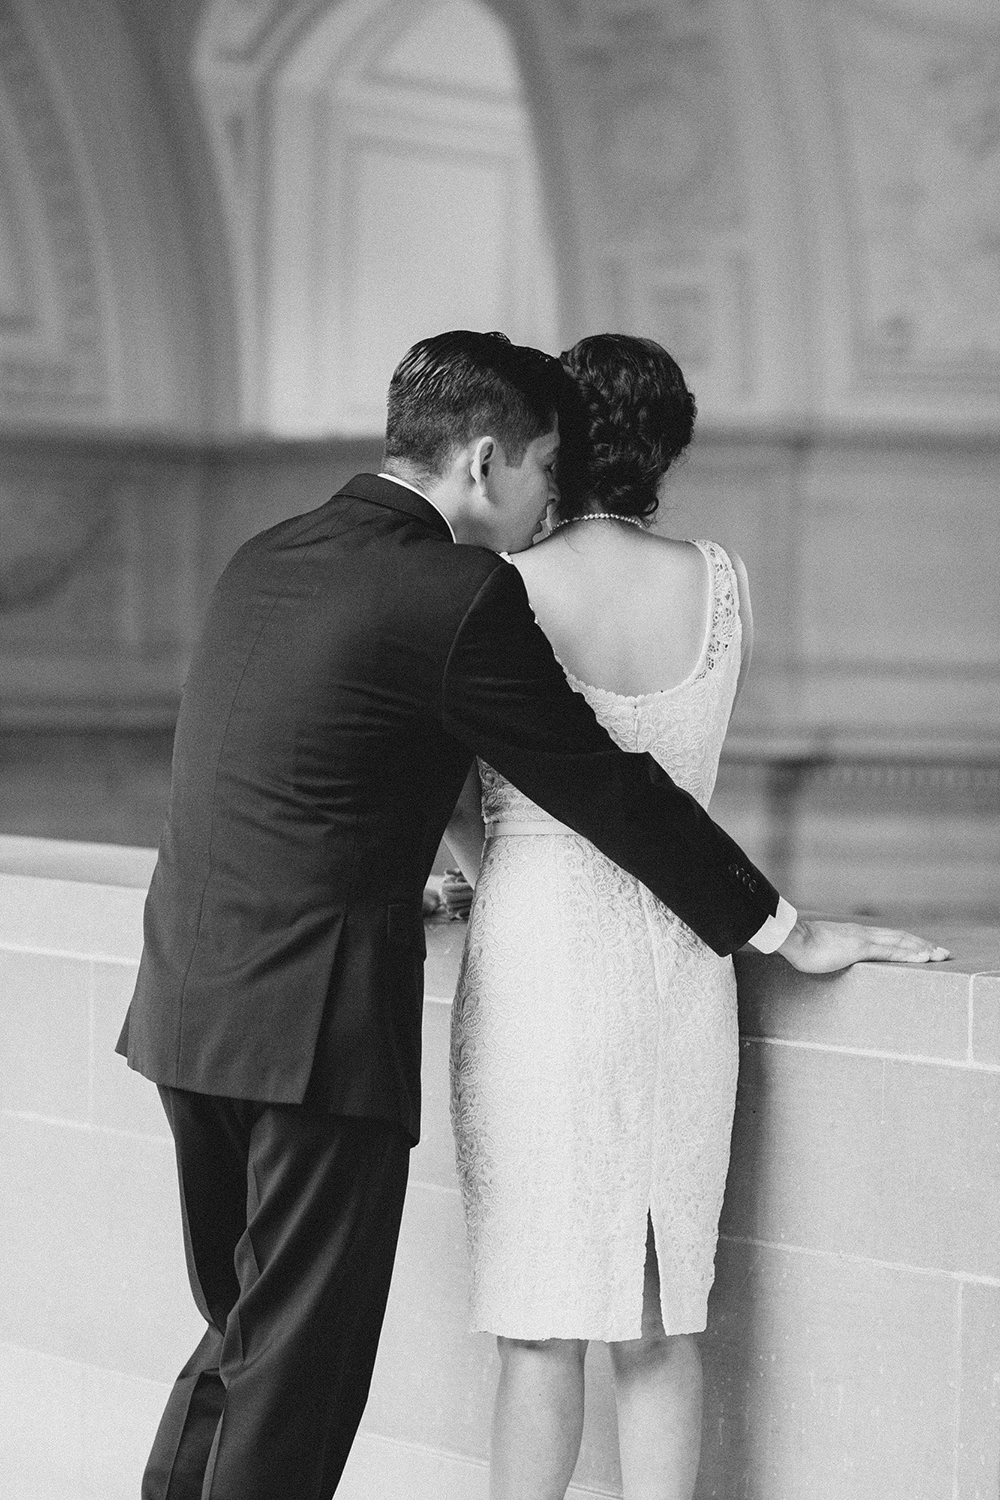 wedding-at-san-francisco-city-hall-09.html